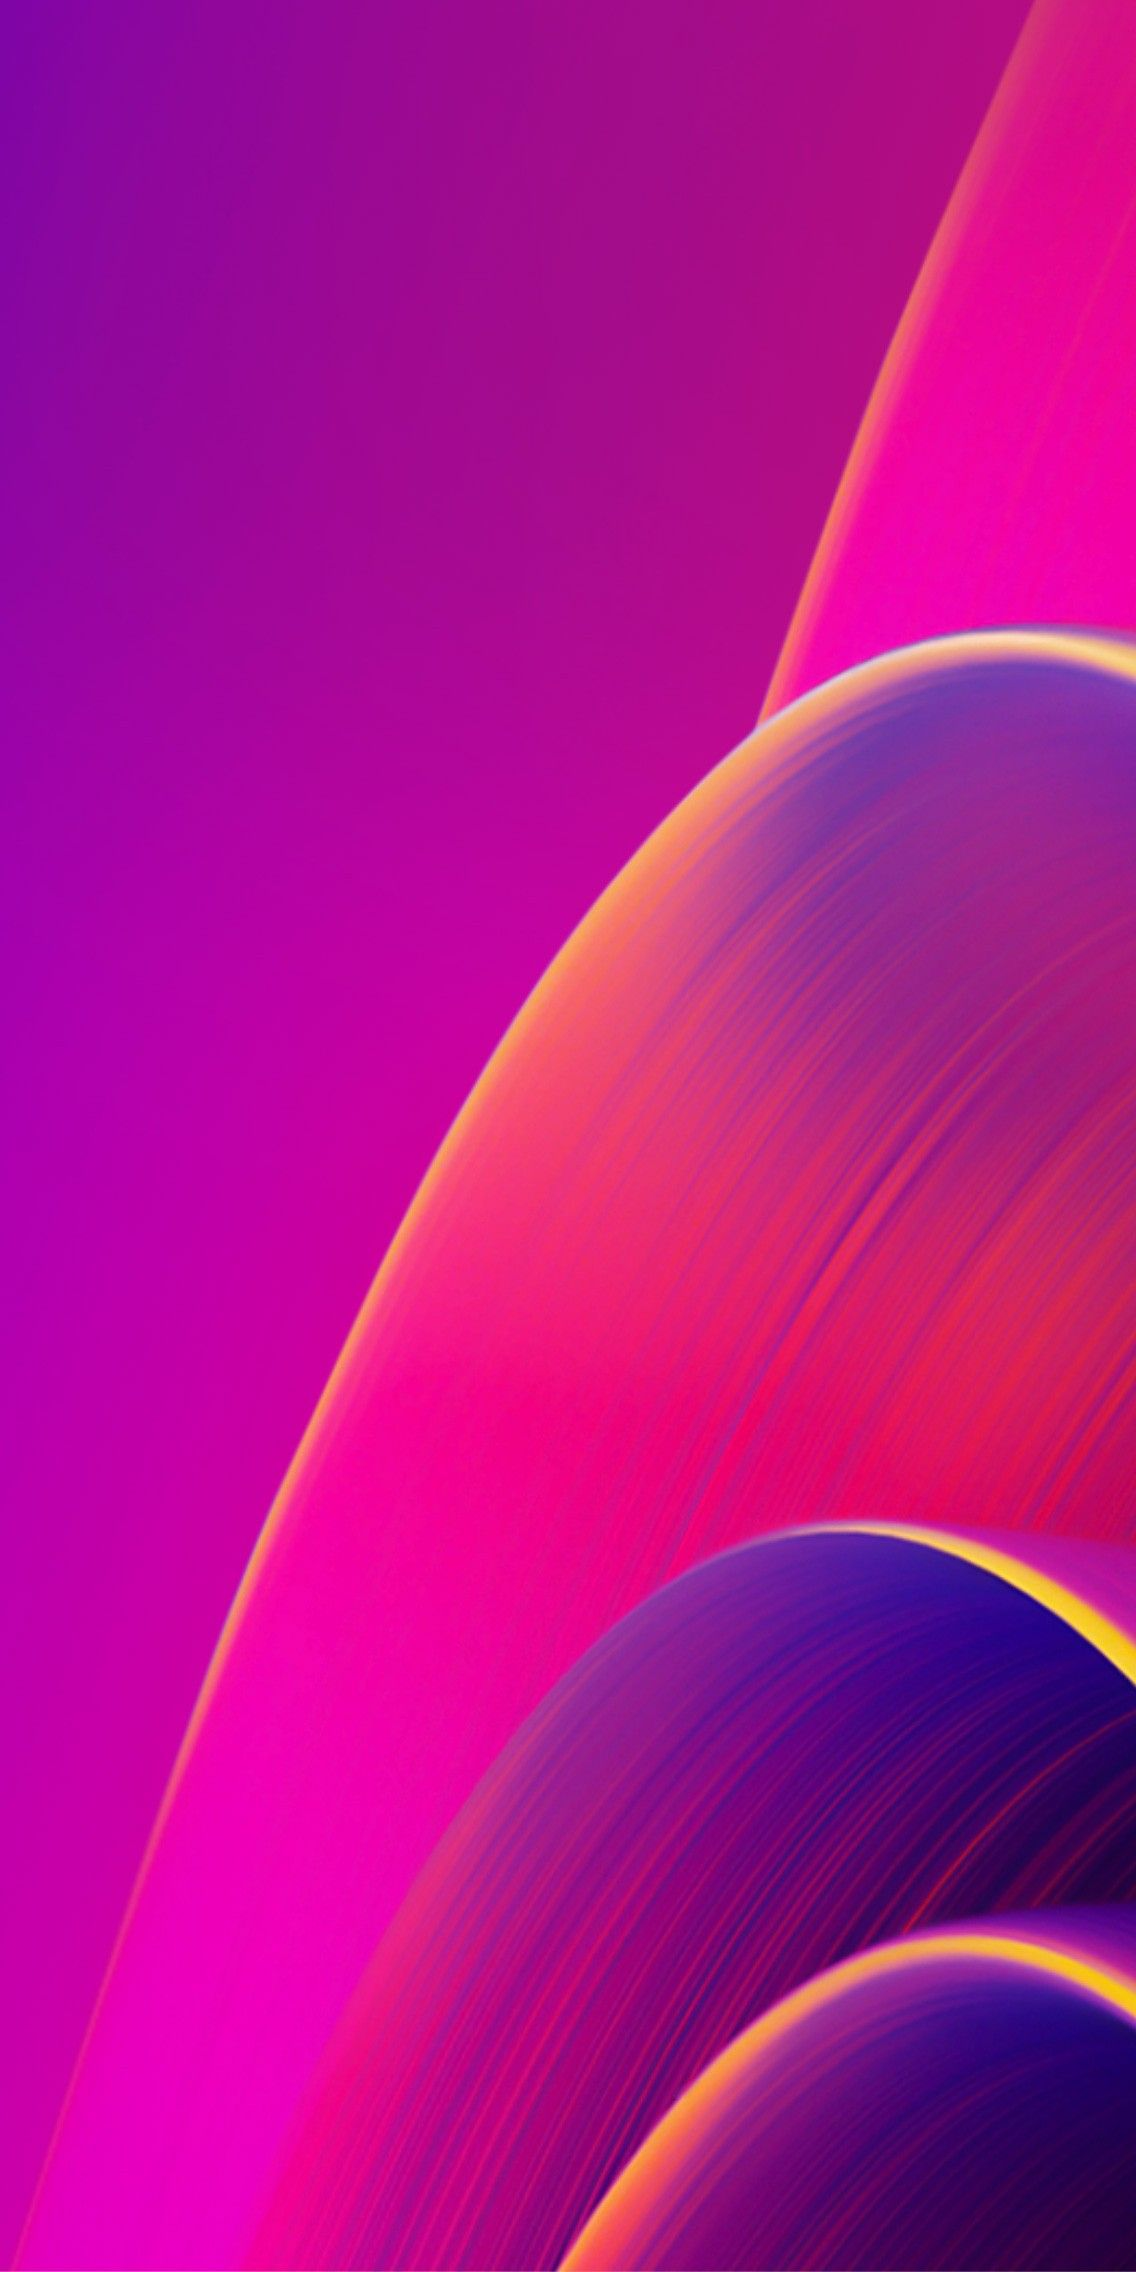 Pin By Iyan Sofyan On Abstract Amoled Liquid Gradient Mobile Wallpaper Android Ombre Wallpapers Phone Background Wallpaper